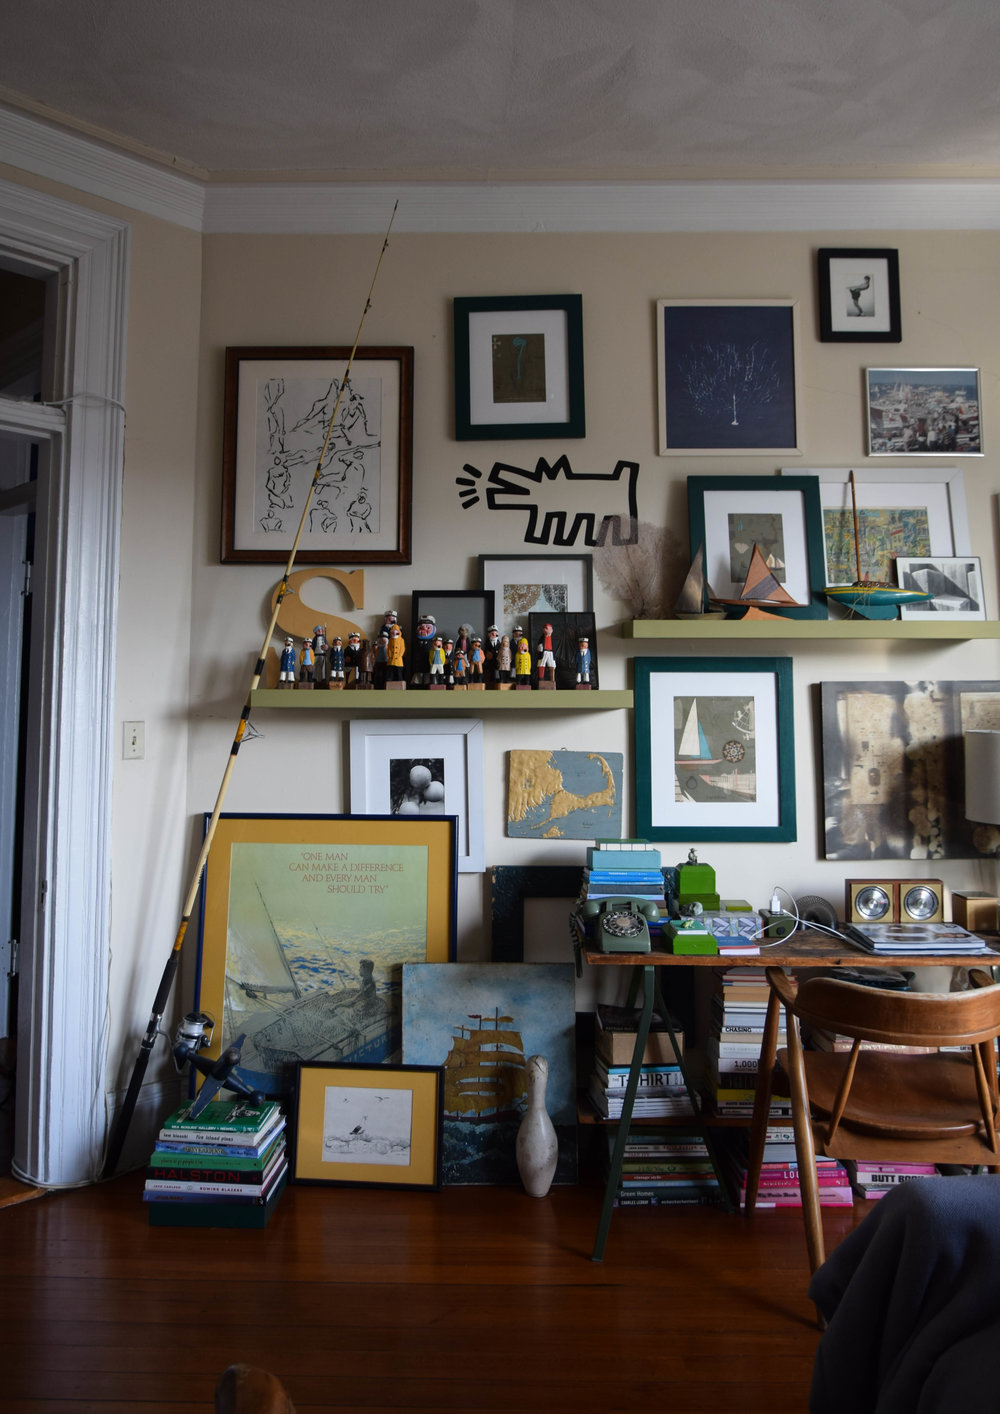 Saul's eye for design and curation doesn't shut when he leaves work. His South End apartment has been featured on interior design blogs for its pristinely cluttered collection of nautical trinkets and New England-inspired decor. He was named one of Boston's most stylish residents in 2015 by the Boston Globe.